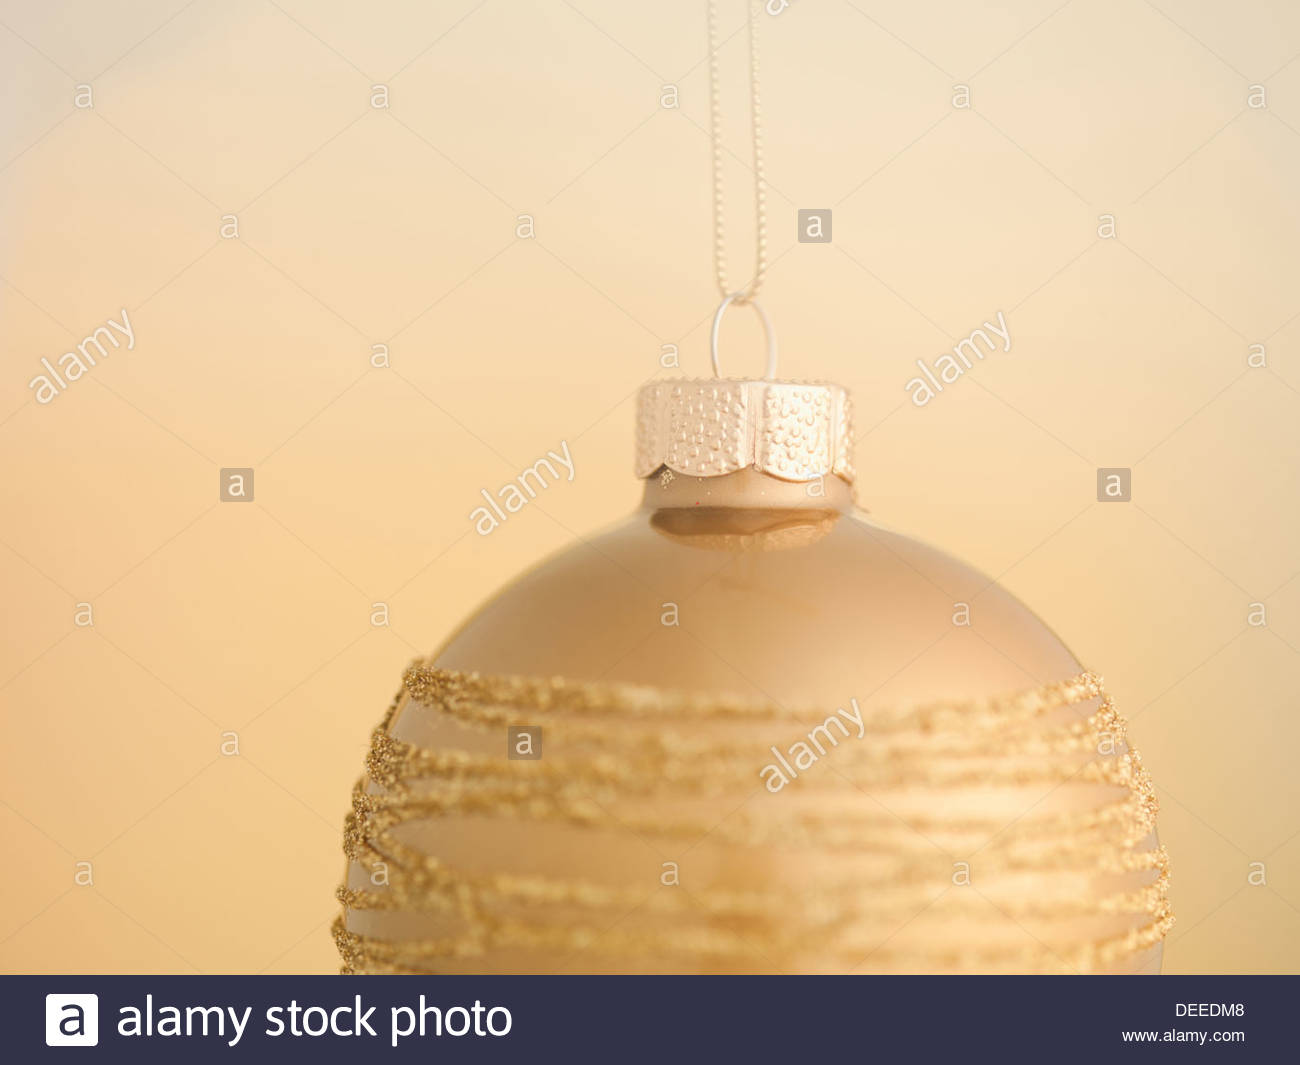 Christmas ornament hanging on string Photo Stock